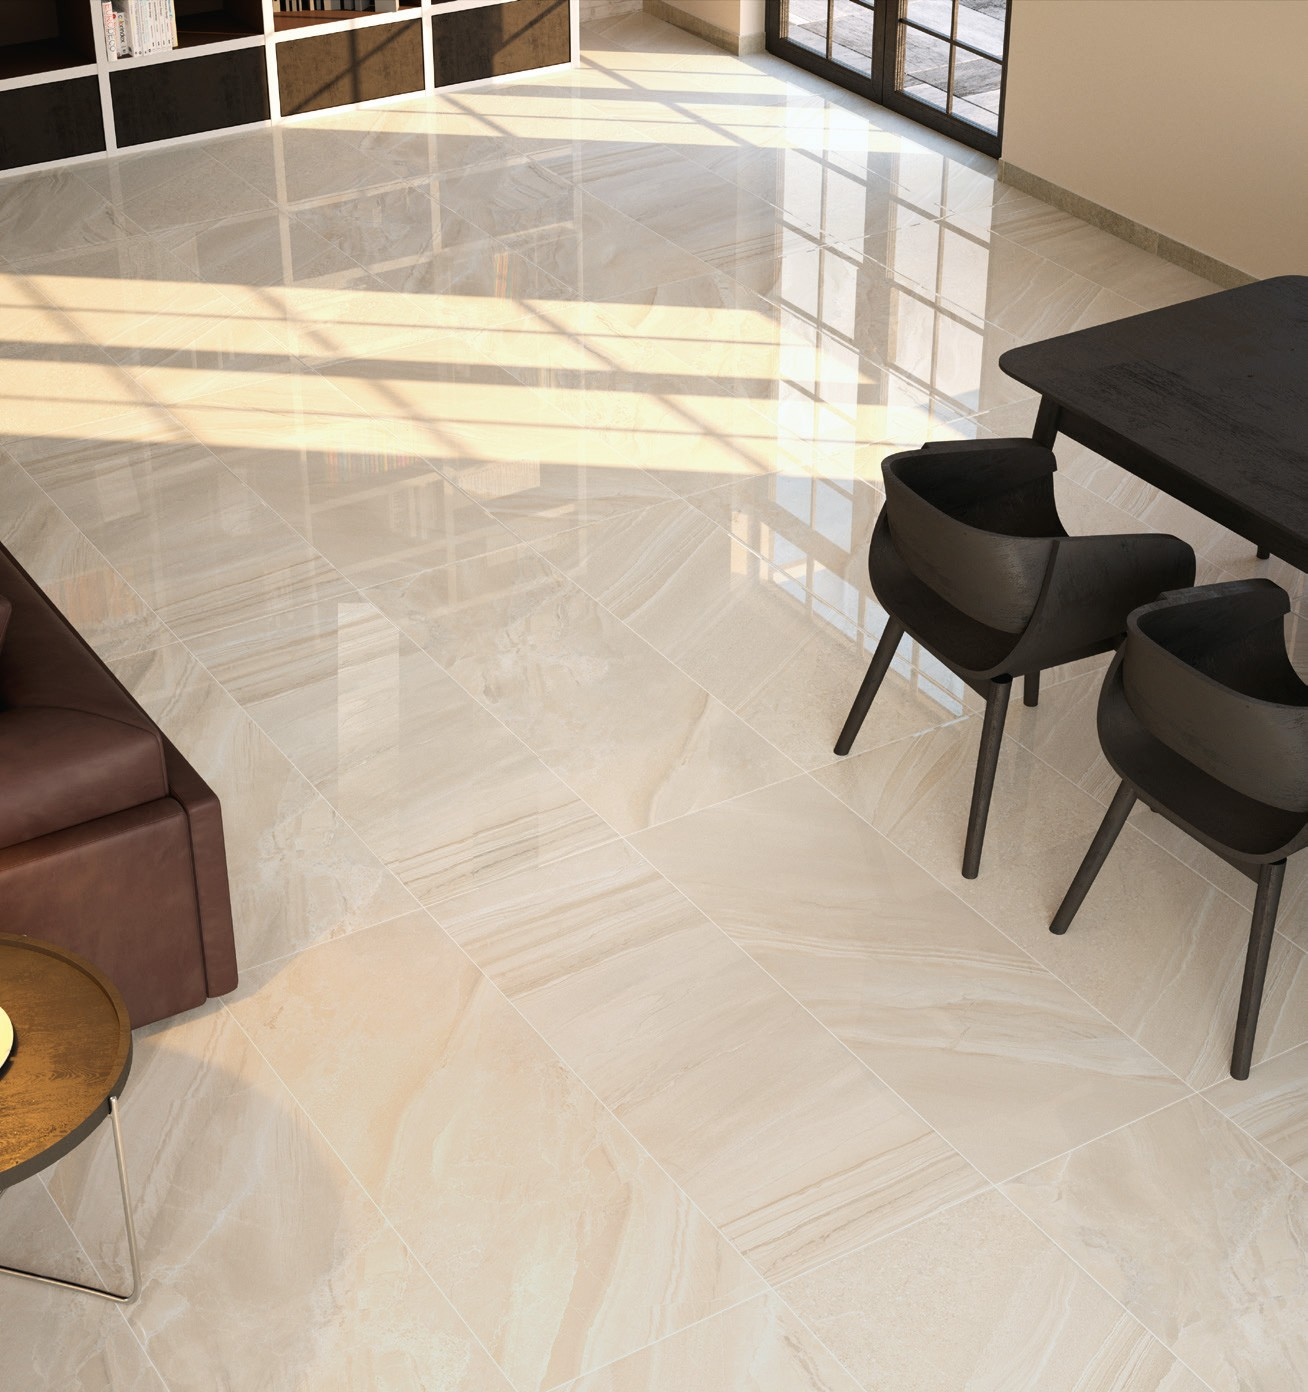 amb neogloss - Porcelanite ONE